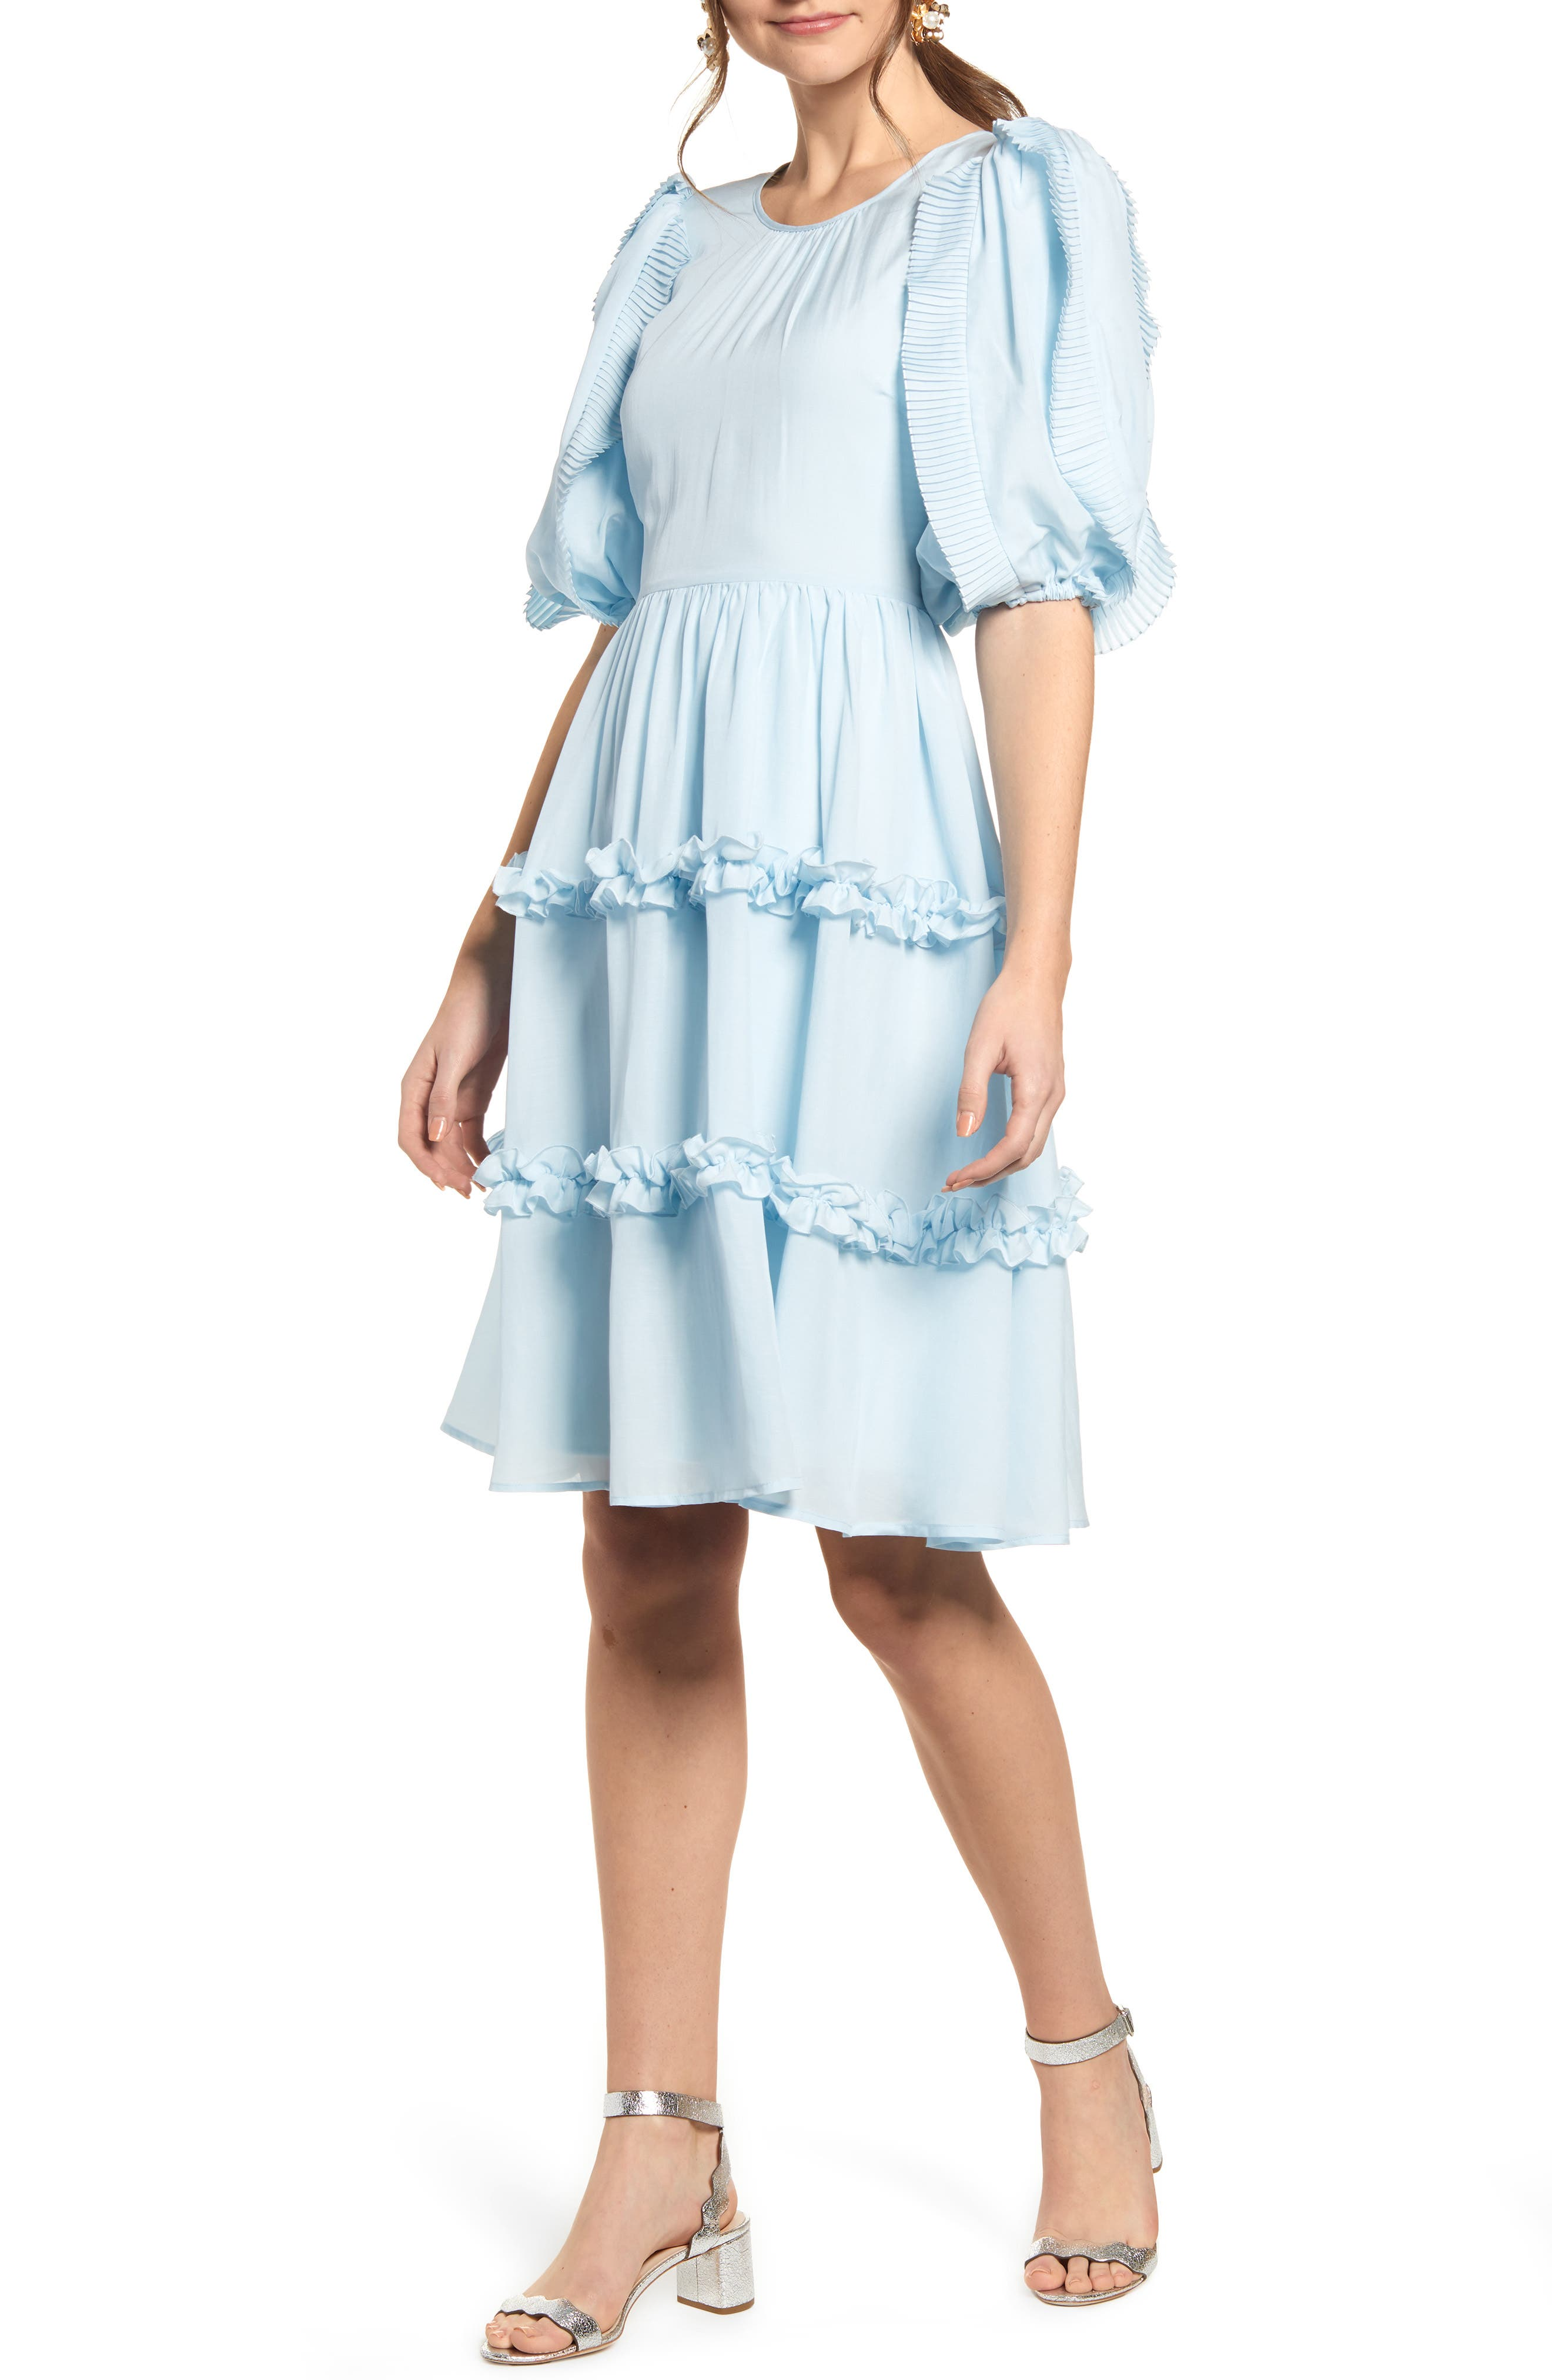 Rachel Parcell Ruffle Sleeve Dress, Blue (Nordstrom Exclusive)